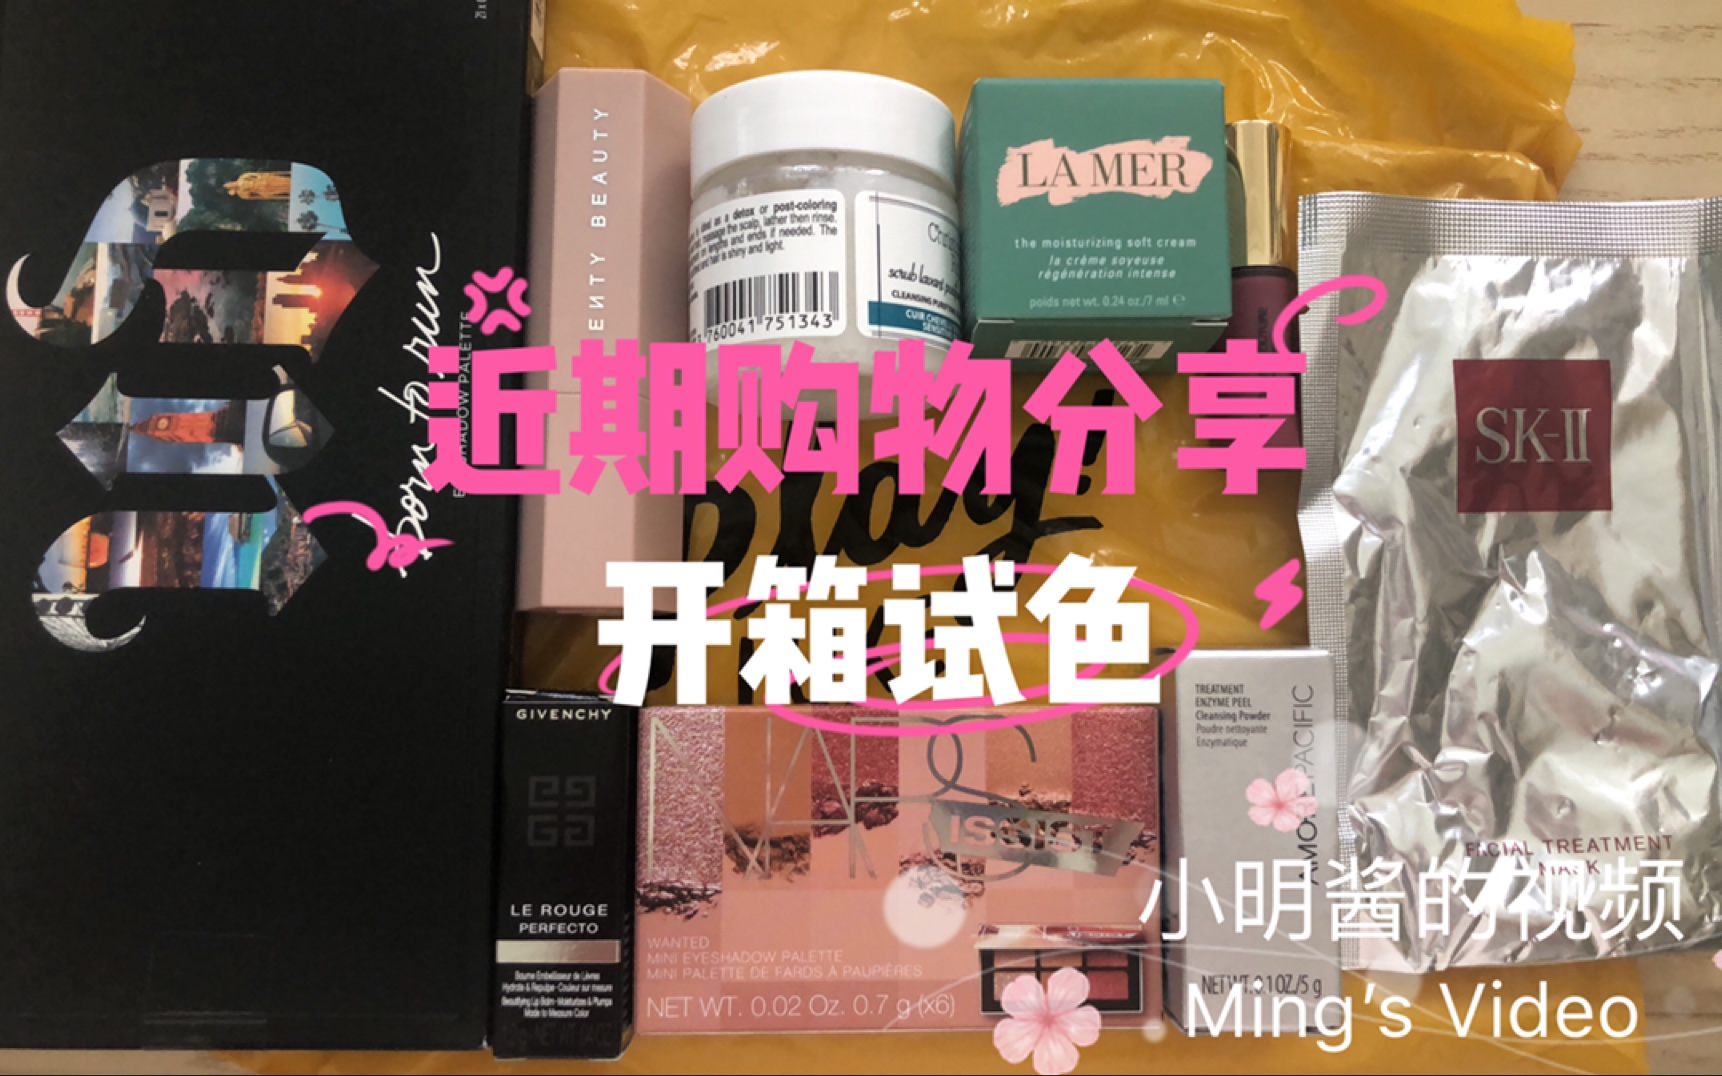 近期购物开箱试色分享-丝芙兰游艇luxe play, born to run, nars mini wanted, Fenty Beauty修容